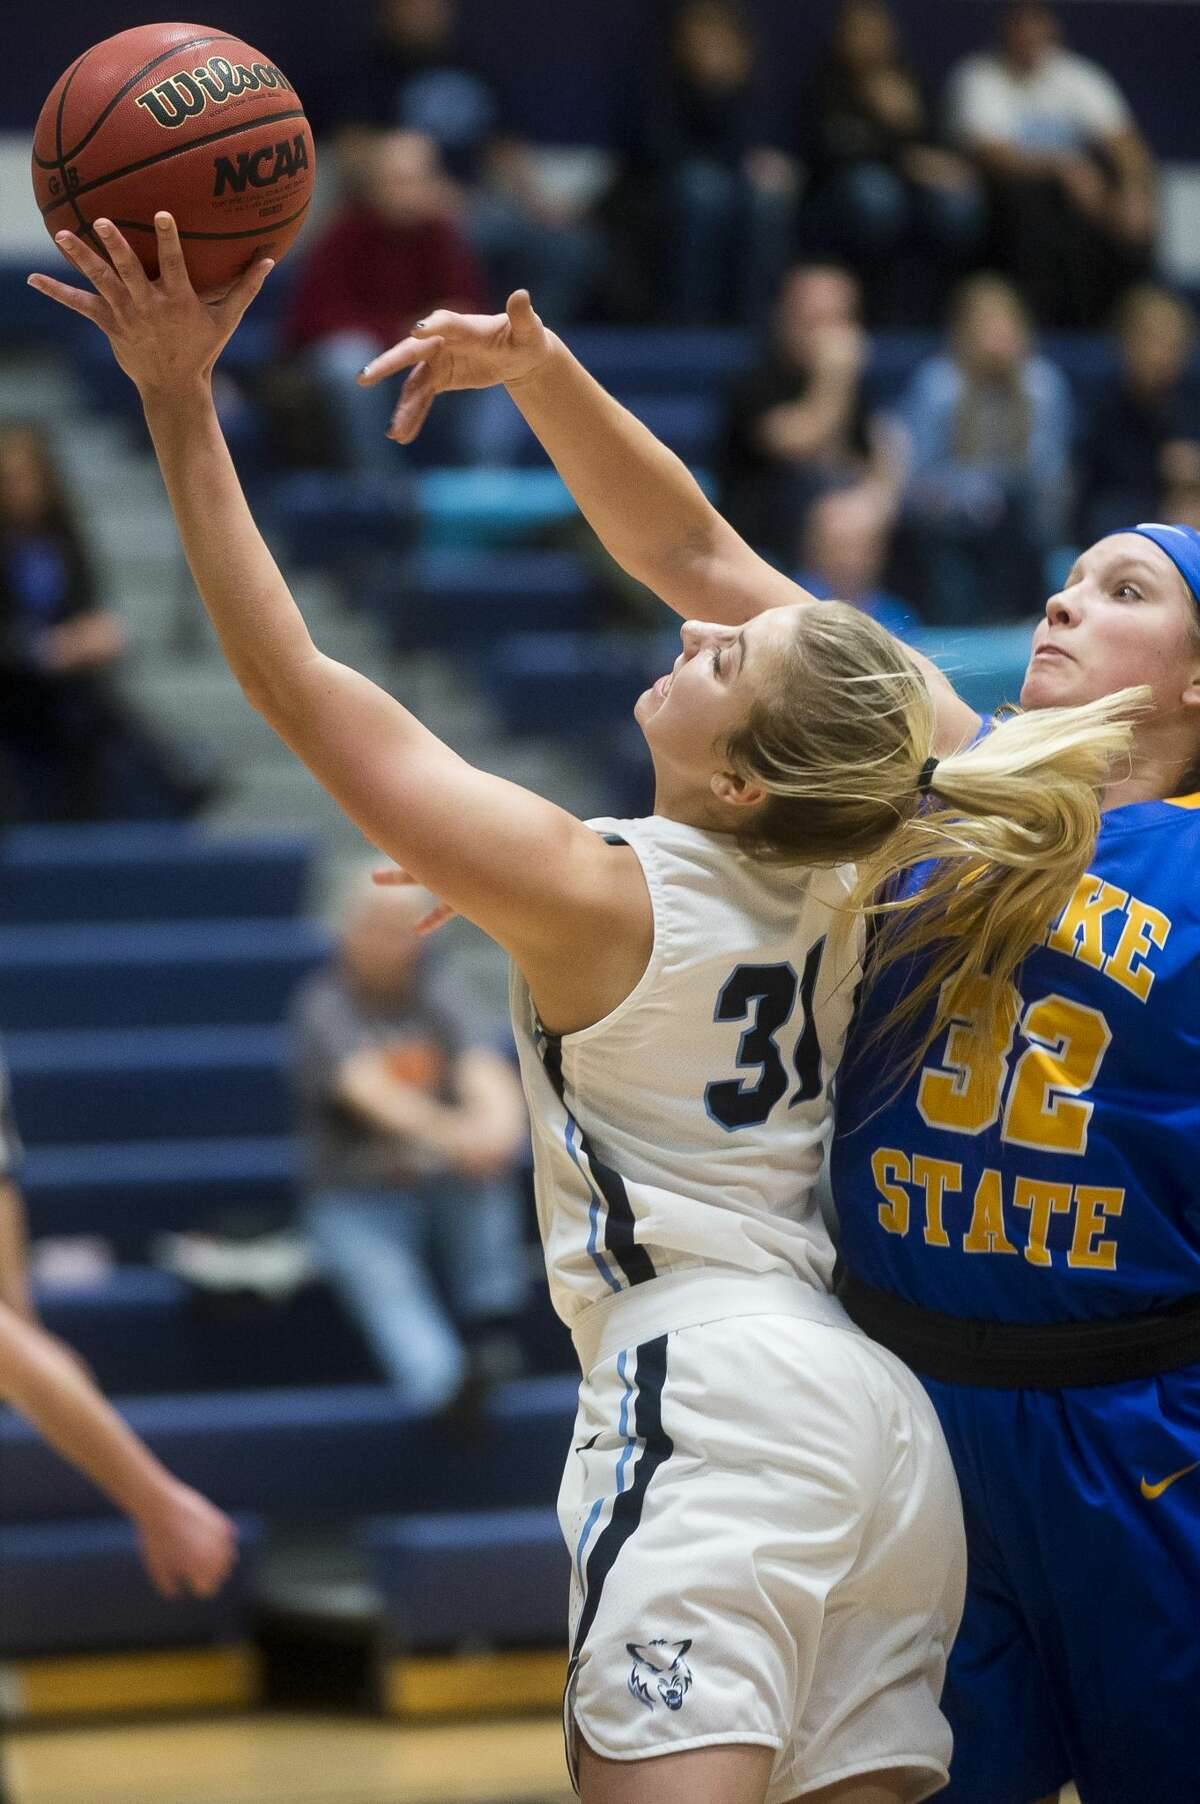 Northwood's Maddy Seeley takes a shot during the Timberwolves' game against Lake Superior State on Saturday, Dec. 9, 2017 at Northwood University. (Katy Kildee/kkildee@mdn.net)